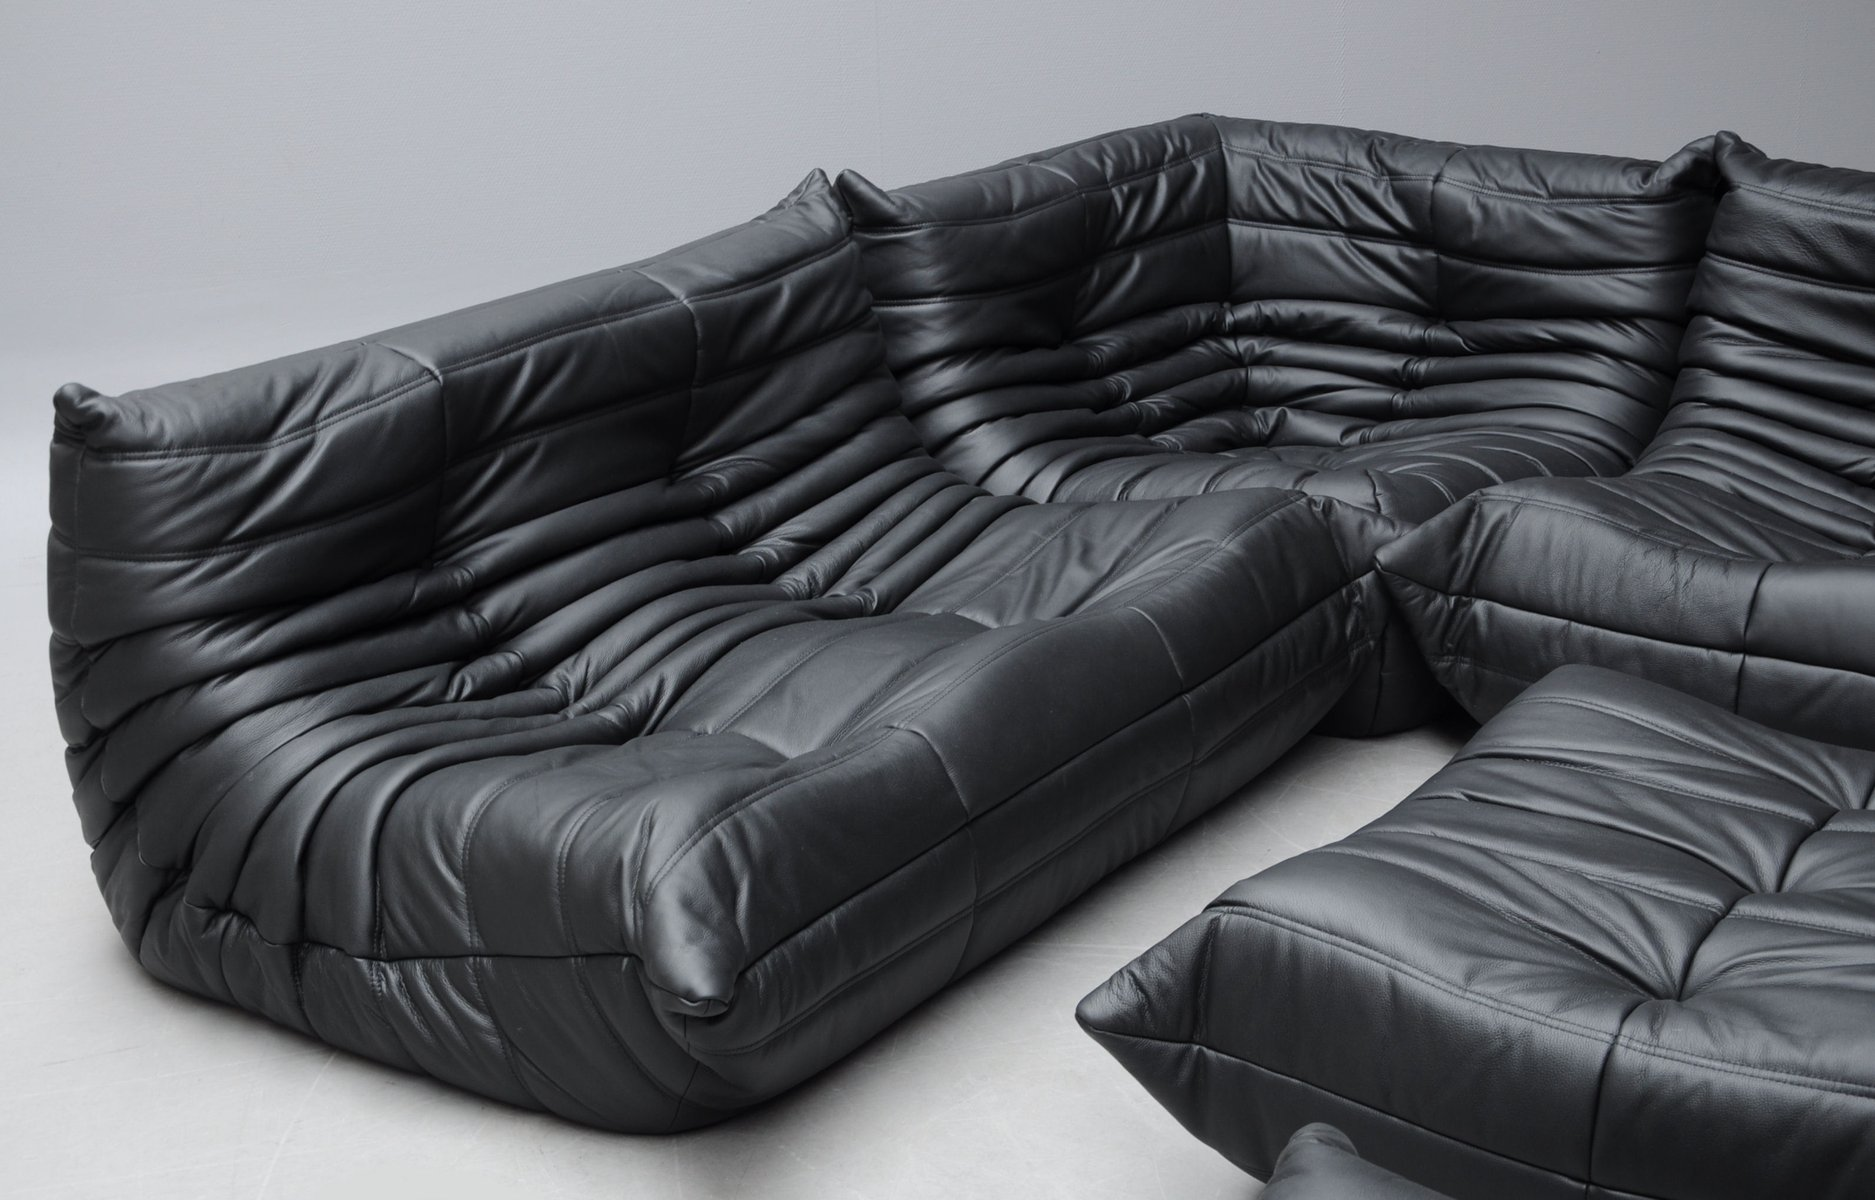 Vintage Black Leather Togo Sofa Set By Michel Ducaroy For Ligne Roset 8 423 00 Price Per